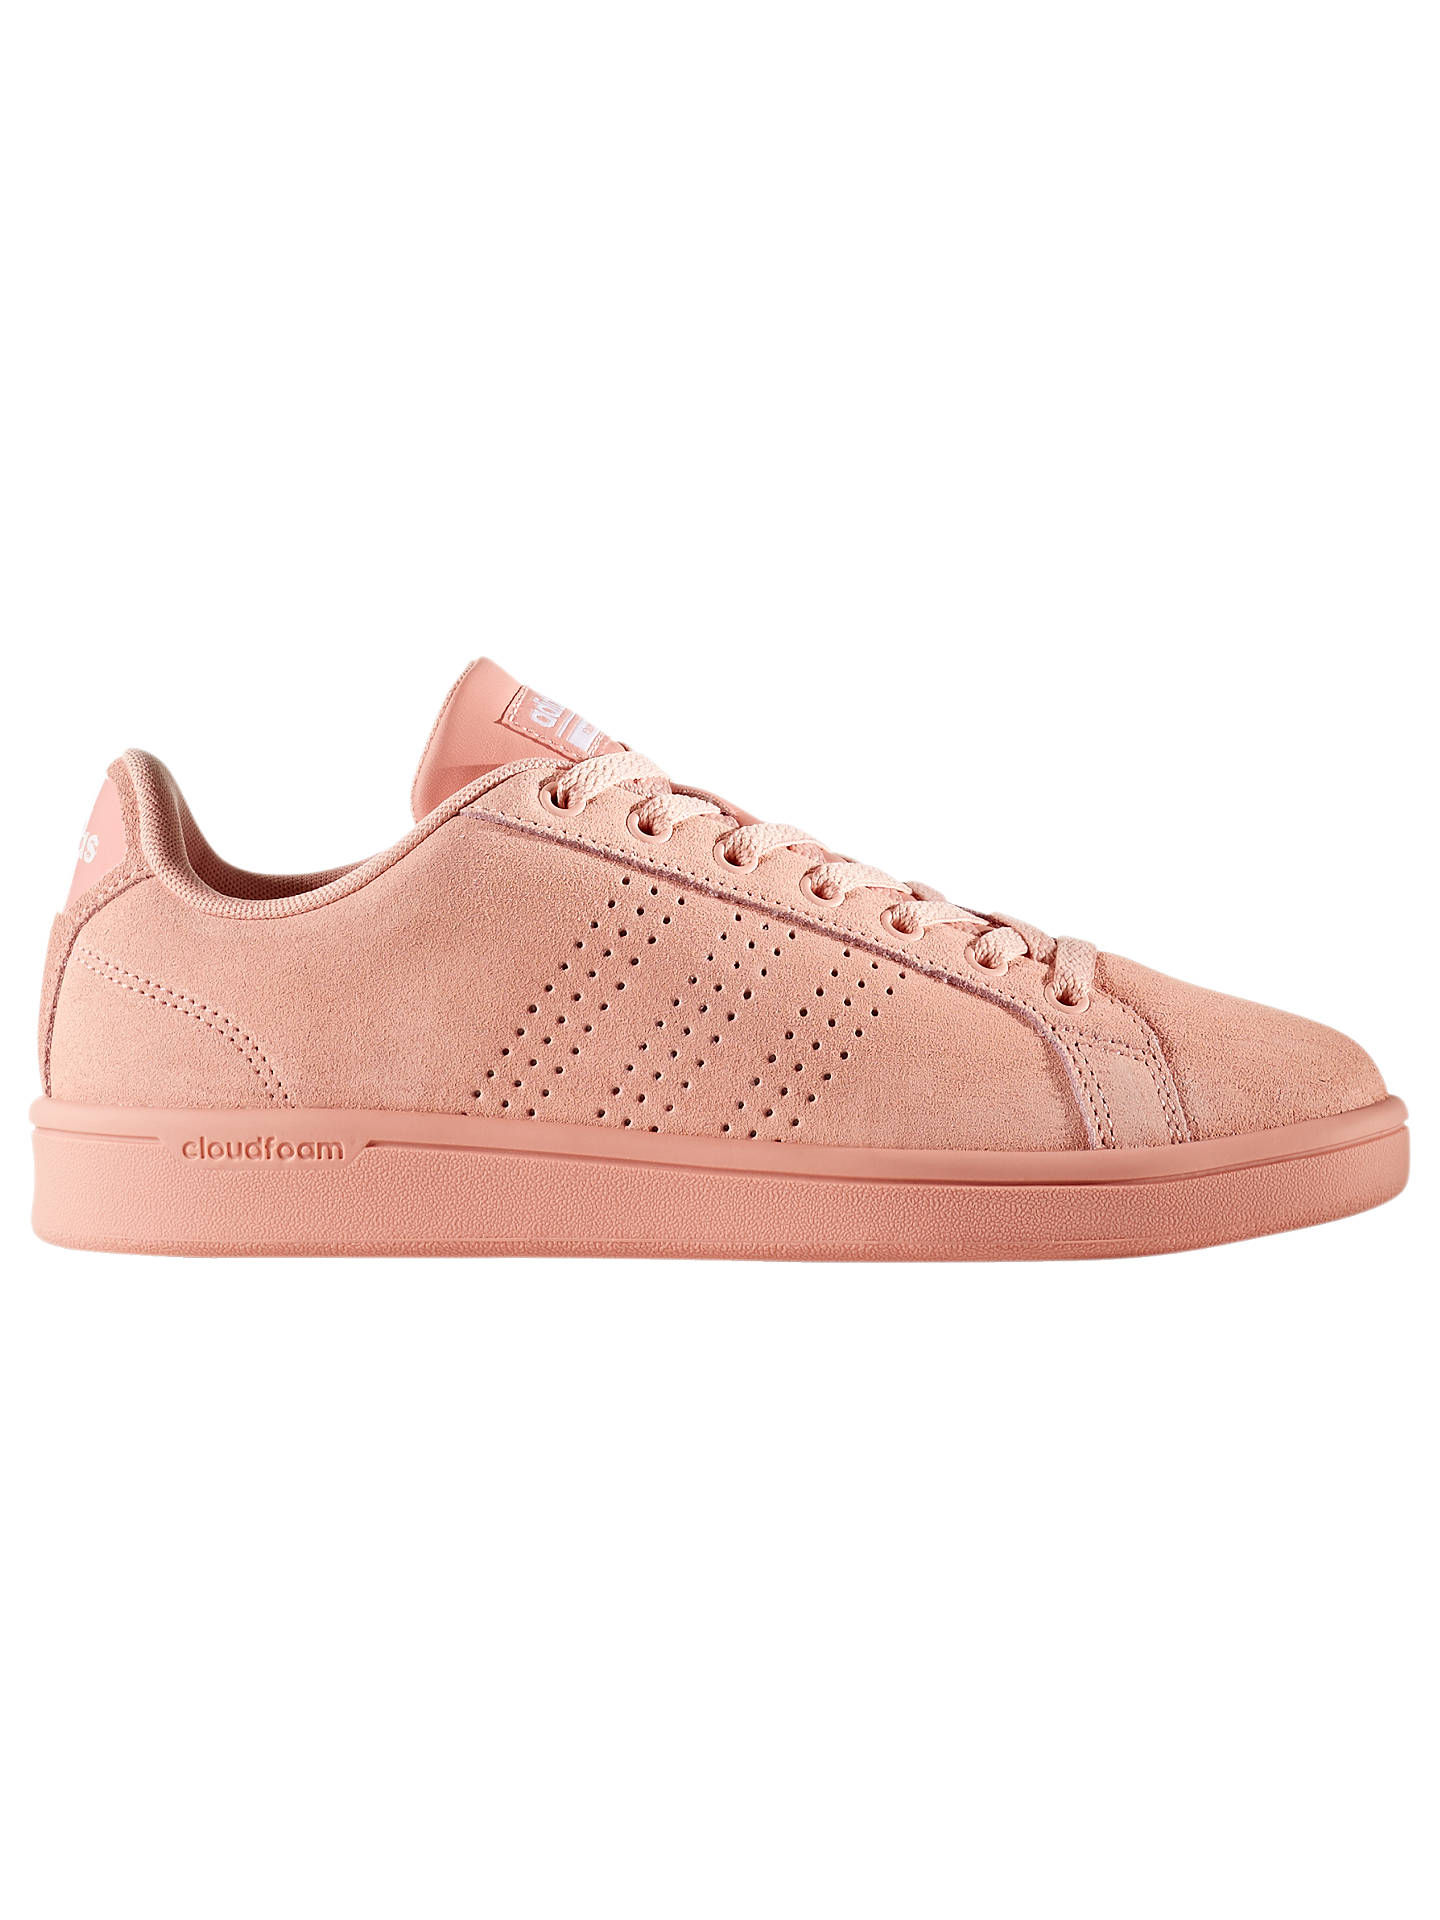 new style 6013a f4012 Buyadidas Cloudfoam Advantage Clean Womens Trainers, Pink, 4 Online at  johnlewis. ...